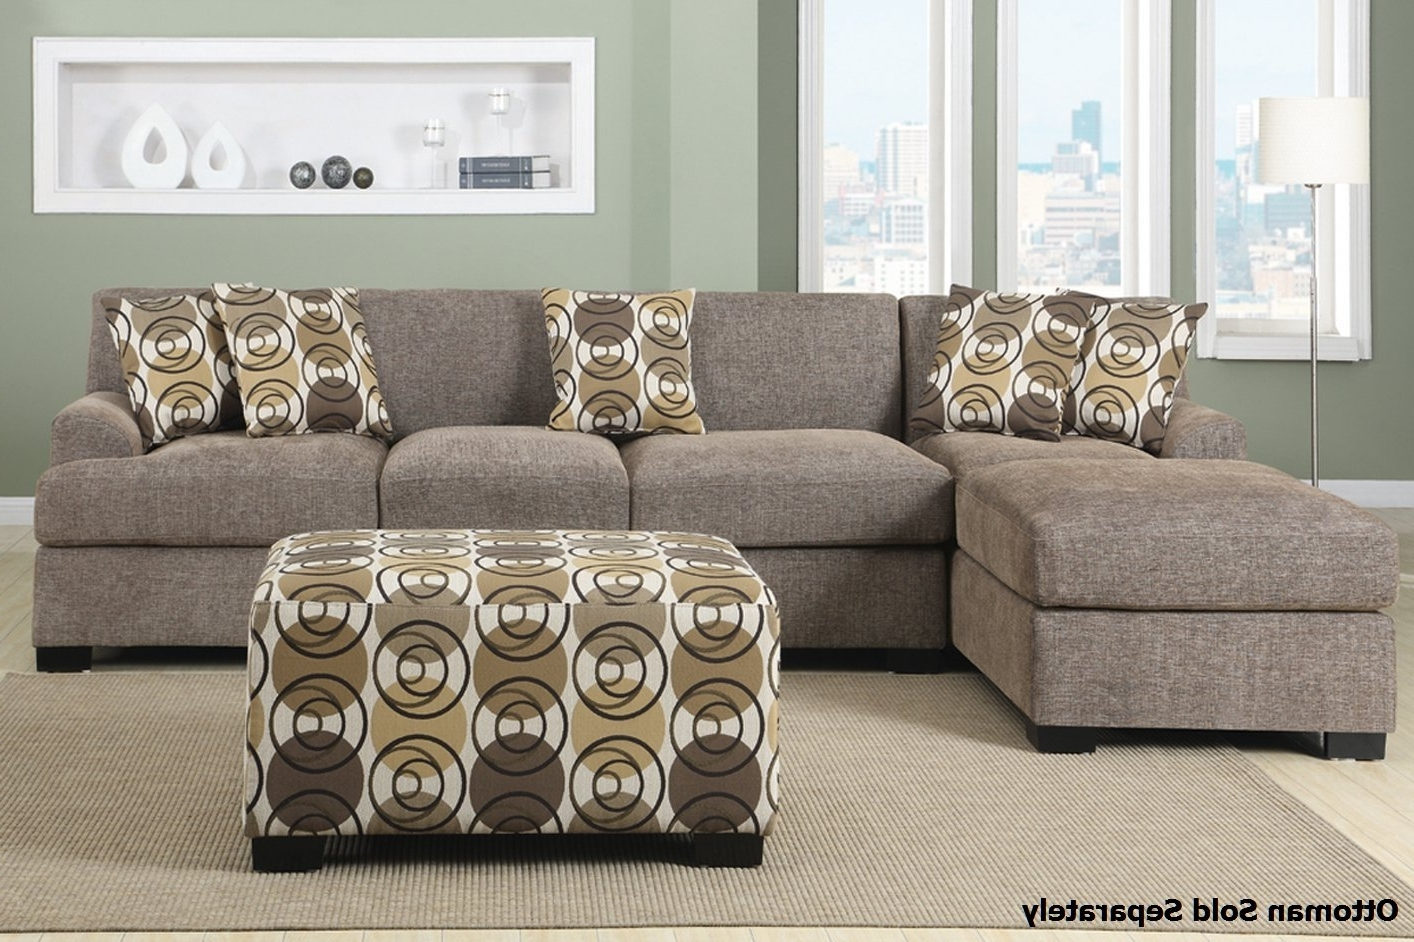 Most Recent Tallahassee Sectional Sofas Within Furniture: American Freight Sectionals For Luxury Living Room (View 13 of 20)